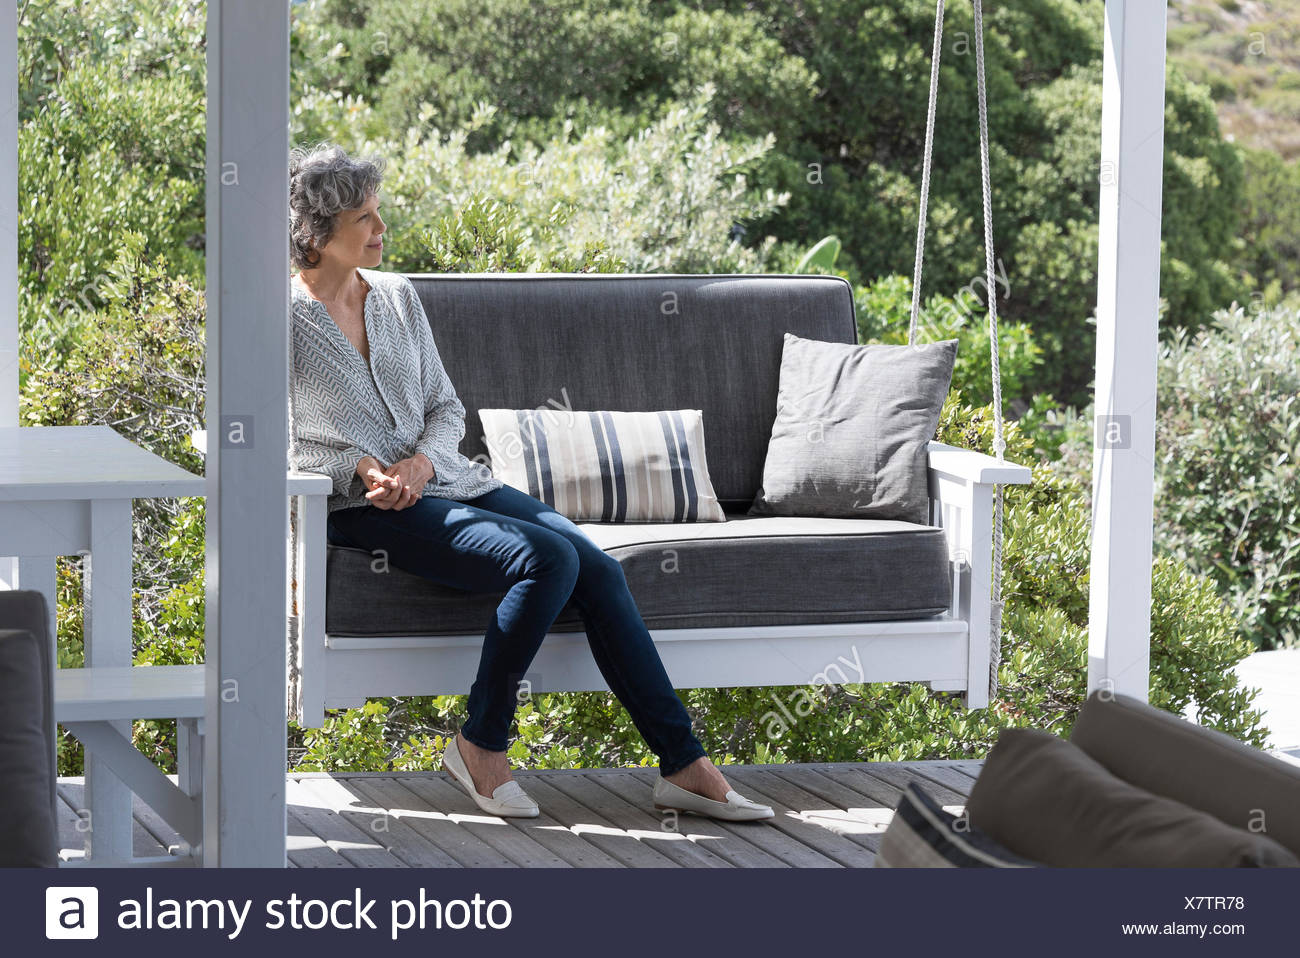 Porch Swing Stock Photos Amp Porch Swing Stock Images Alamy